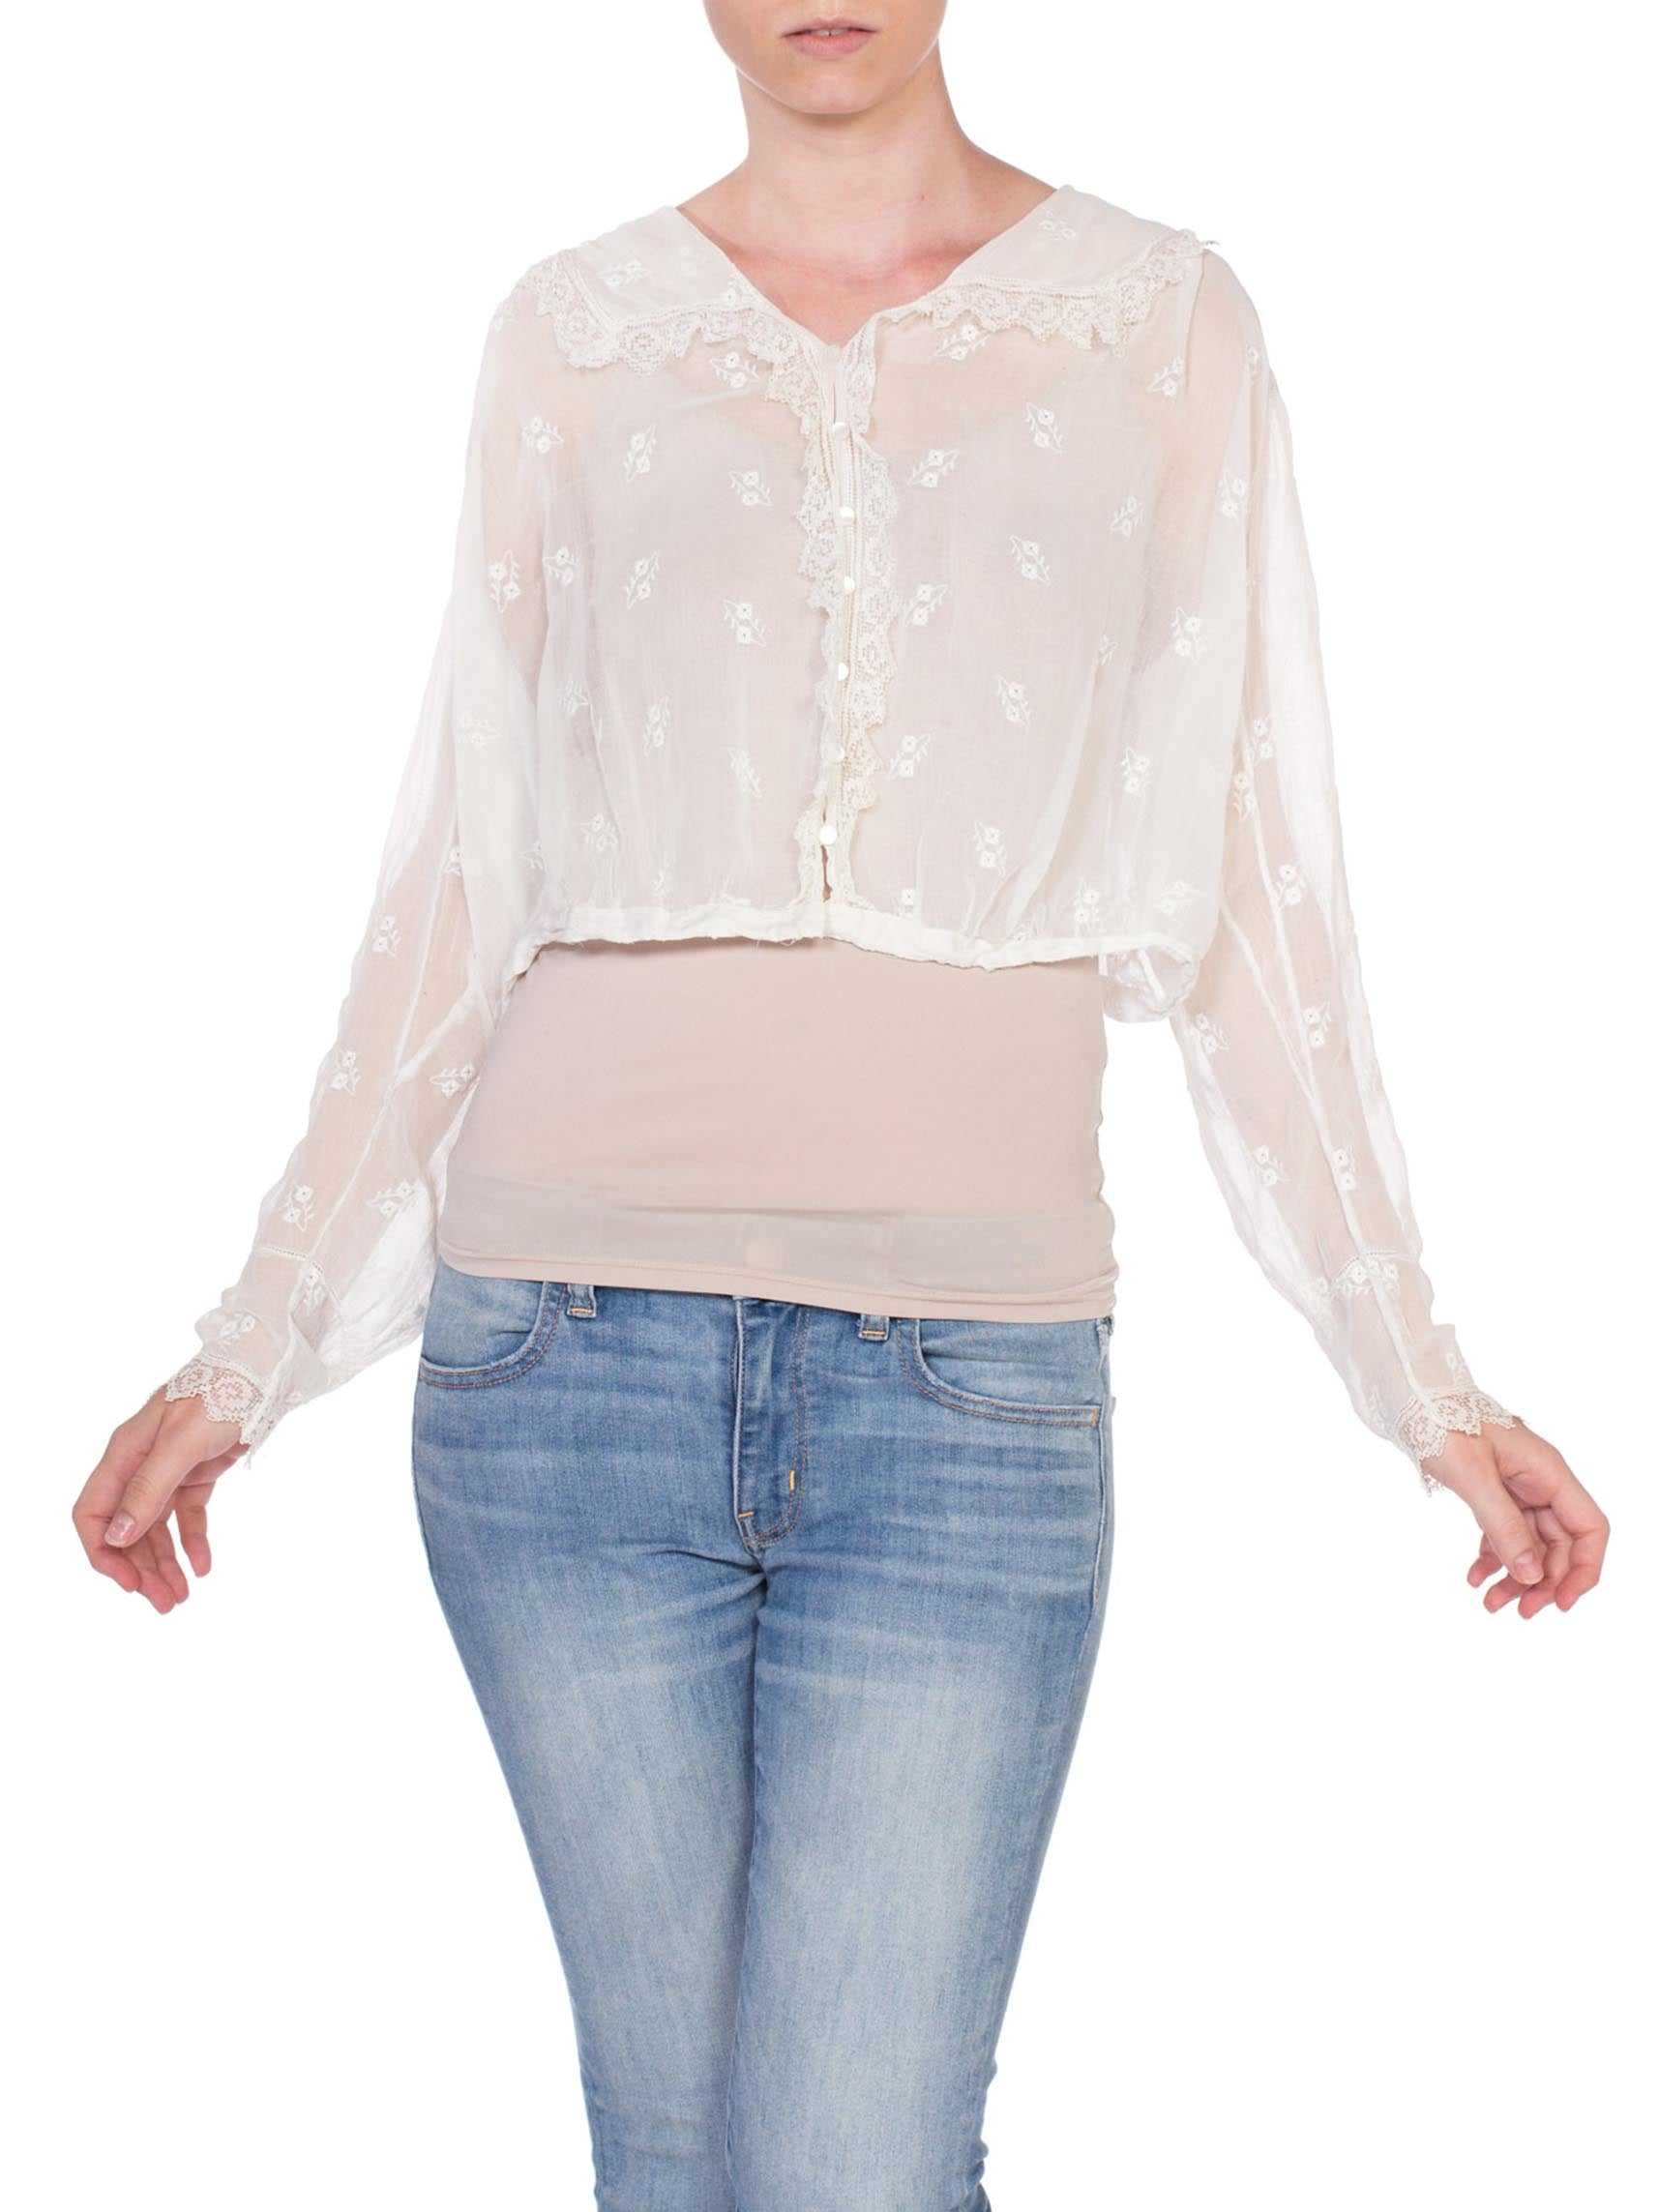 Edwardian White Cotton Voile Floral Embroidered Button Front Suffragette Blouse With Lace Trim XL